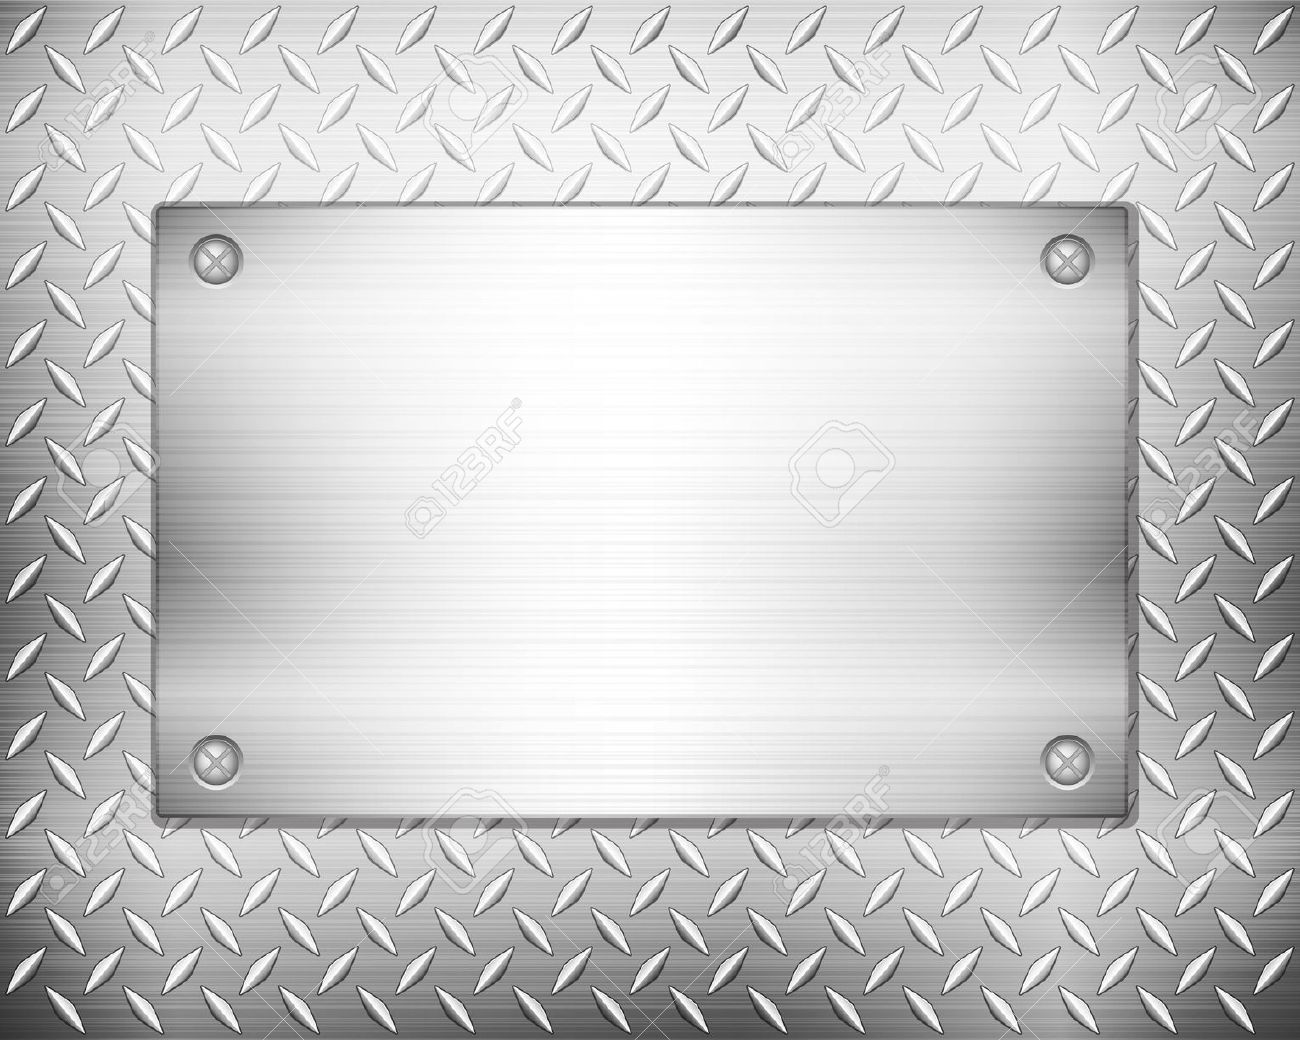 Steel plate clipart.